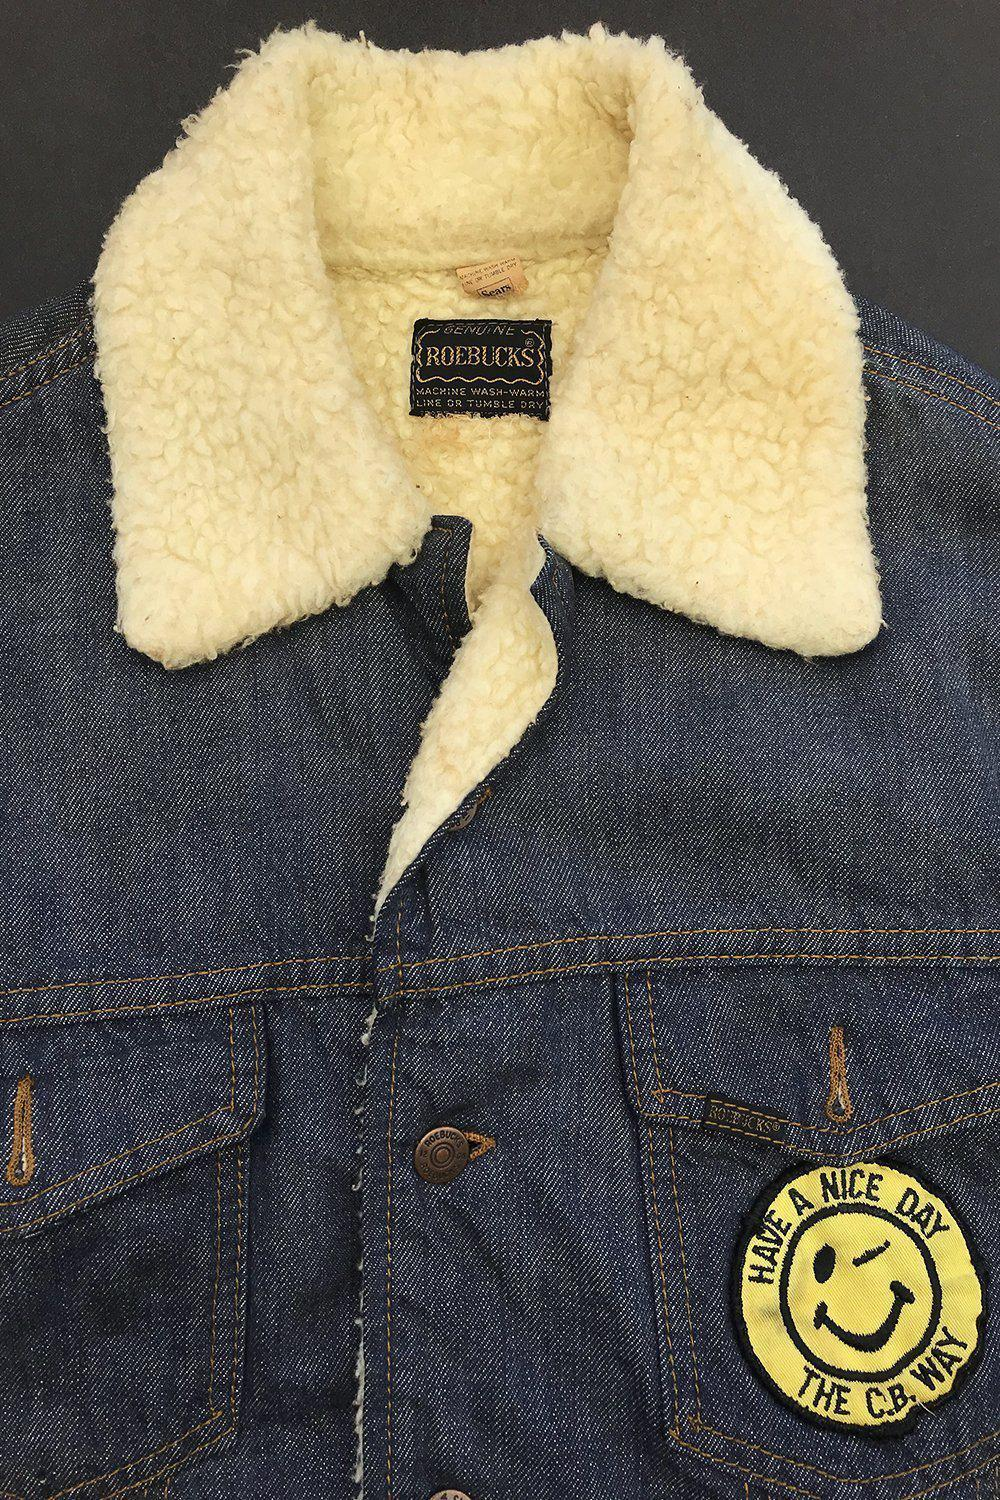 1970s Have A Nice Day Sears Roebucks Faux Shearling Lined Denim Jacket